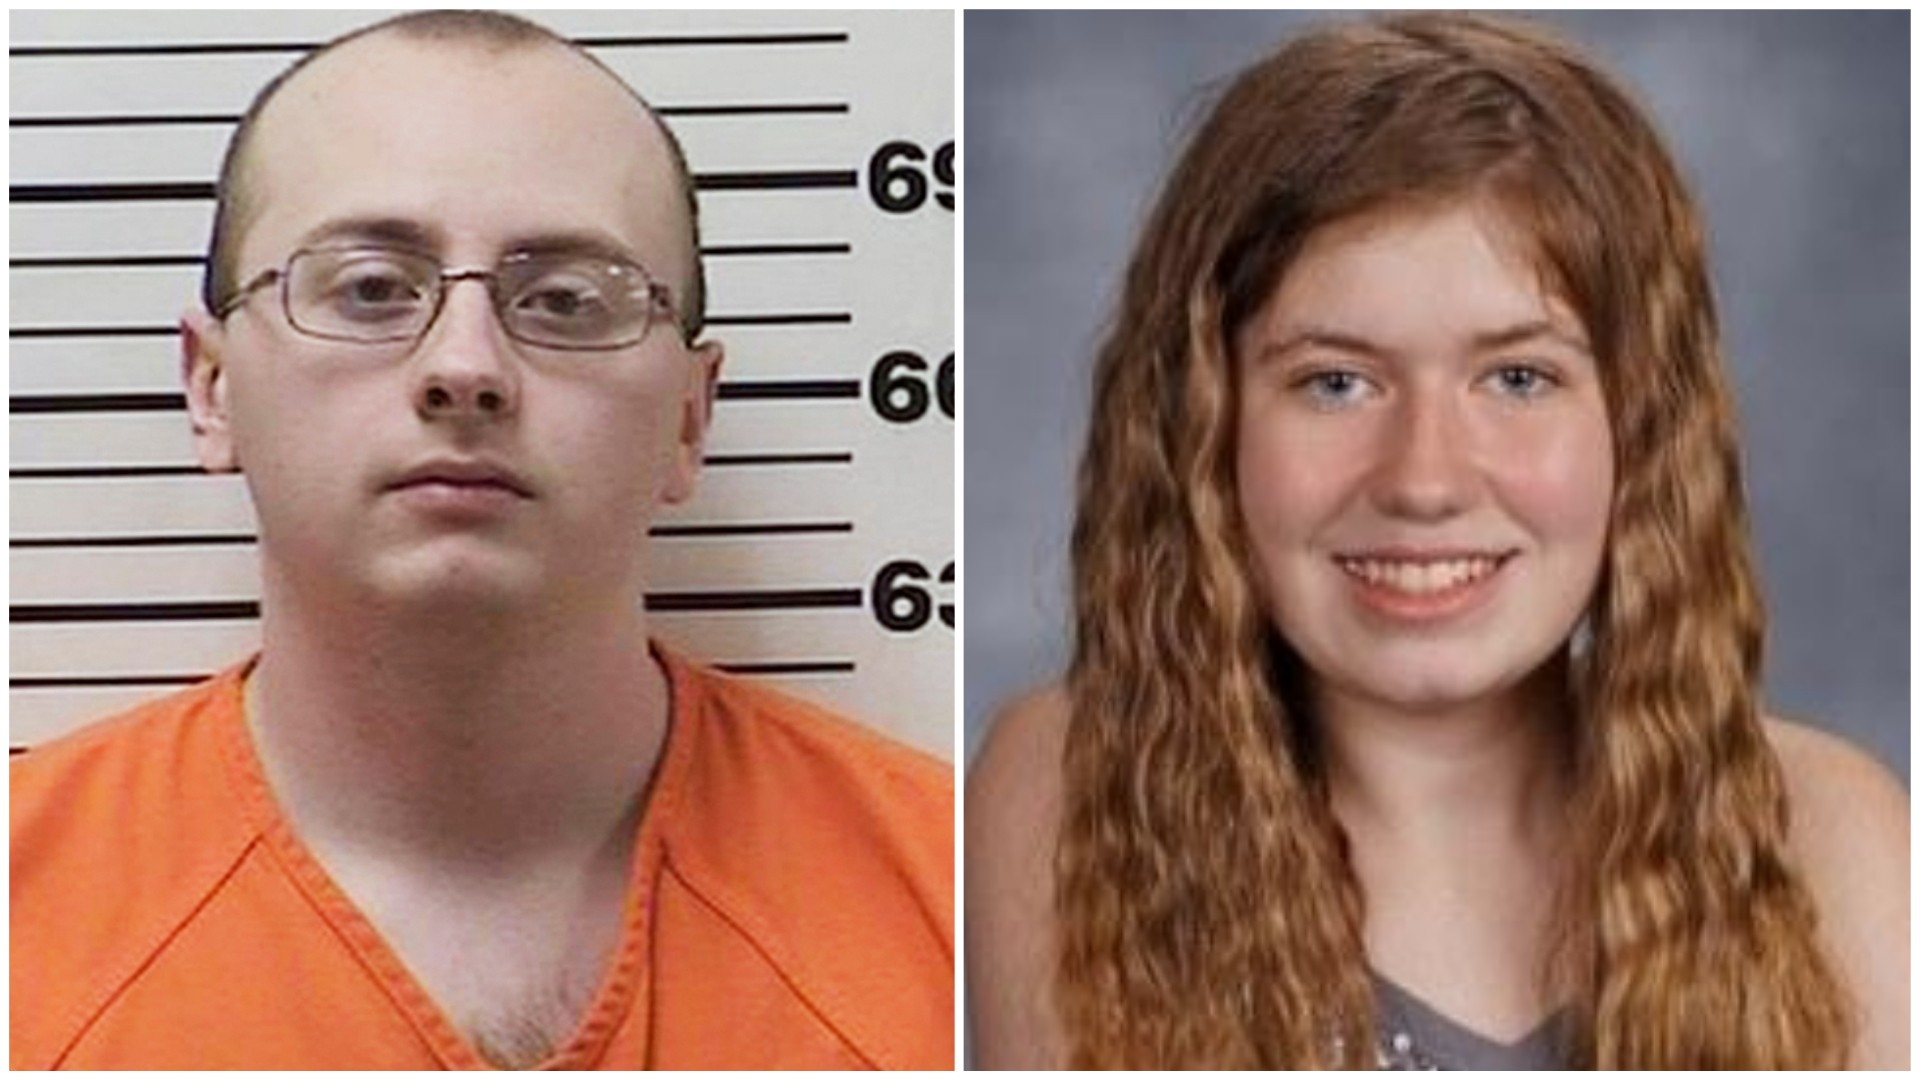 Missing Wisconsin Teen Jayme Closs Is Alive, and a 21-Year-Old Suspect Is in Jail